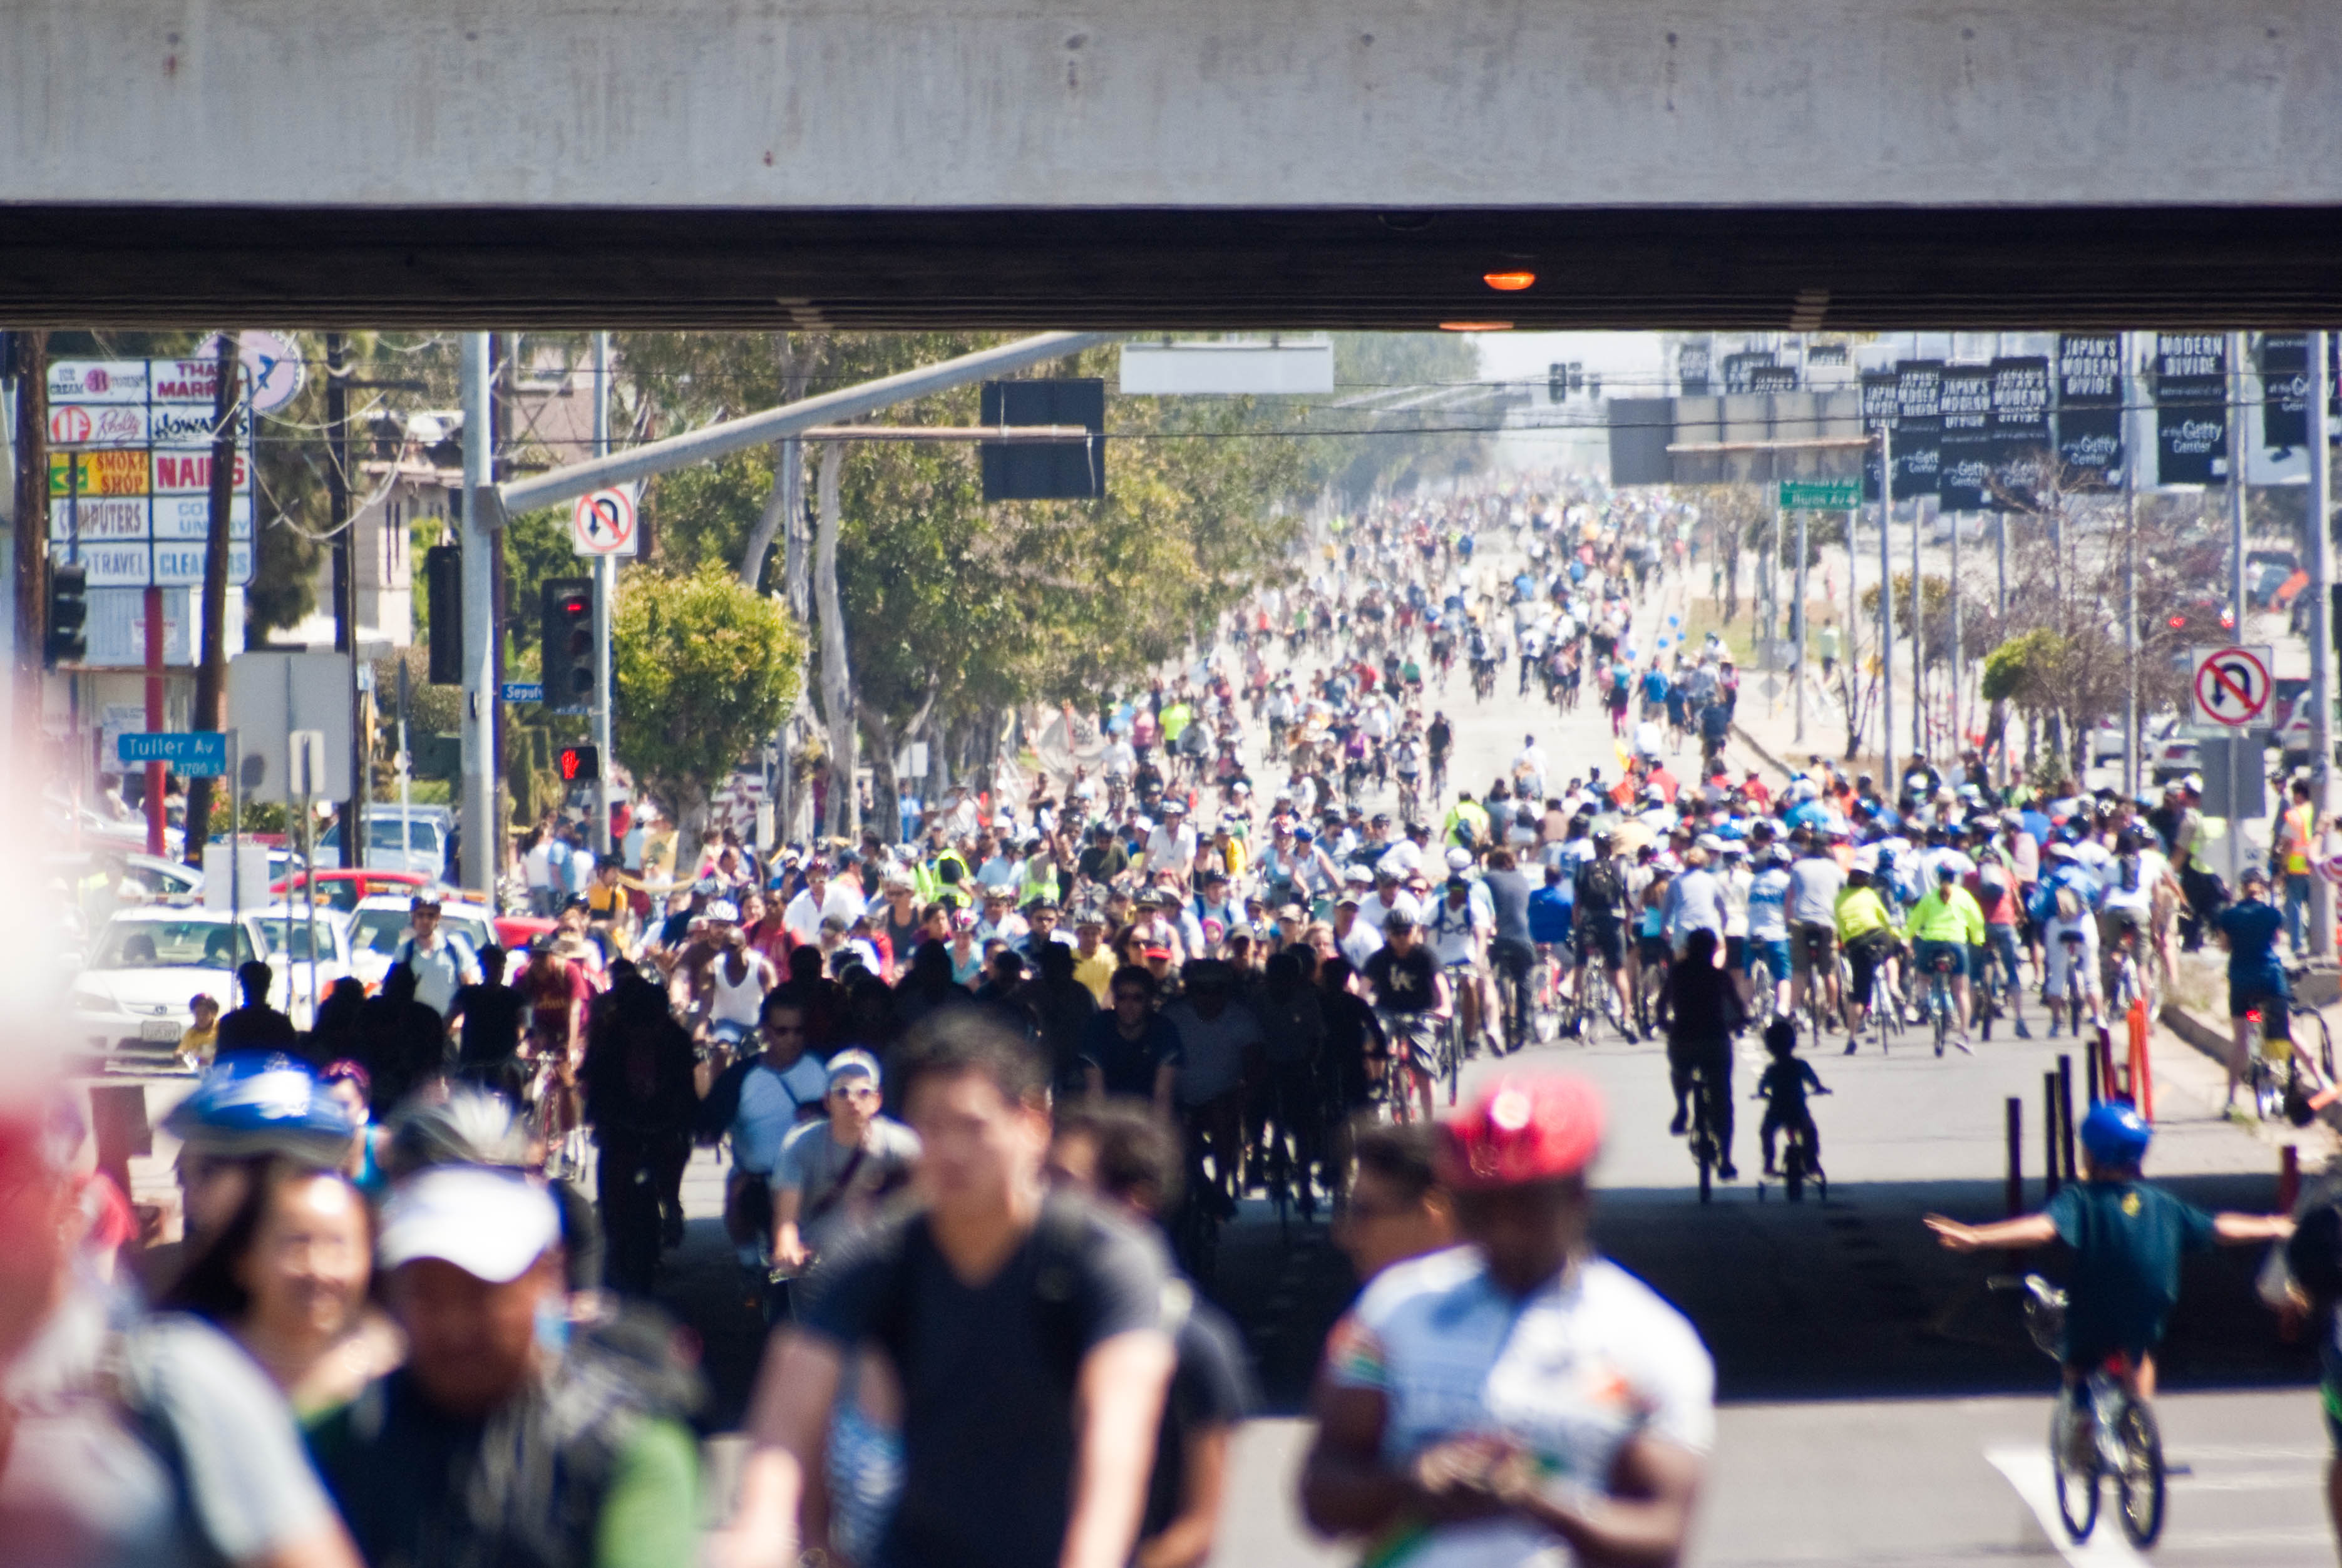 20181 CicLAvia passes under the 405 San Diego Freeway on Venice Blvd